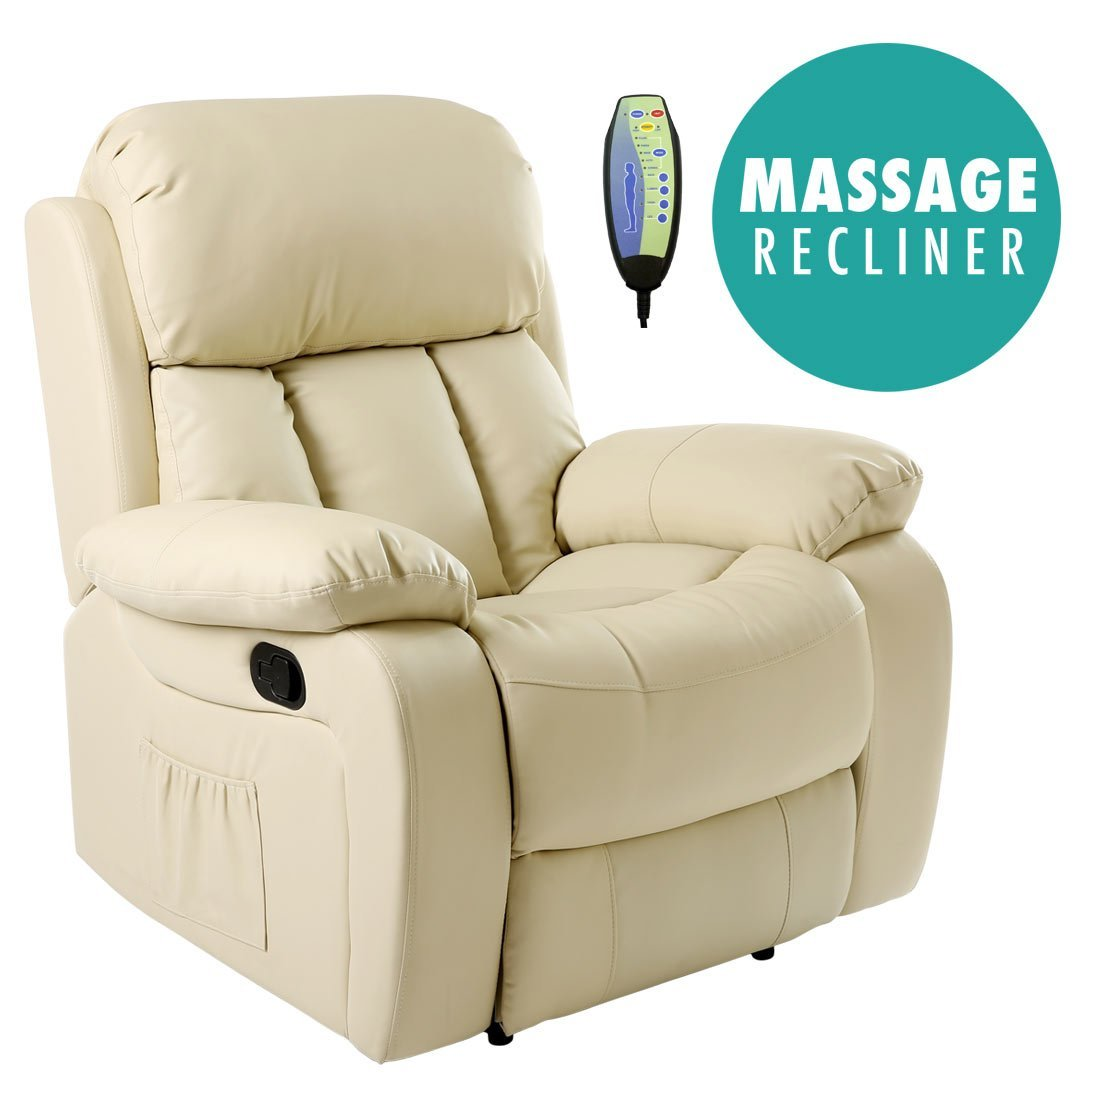 chester heated leather massage recliner chair sofa lounge gaming home armchair brown amazoncouk kitchen u0026 home